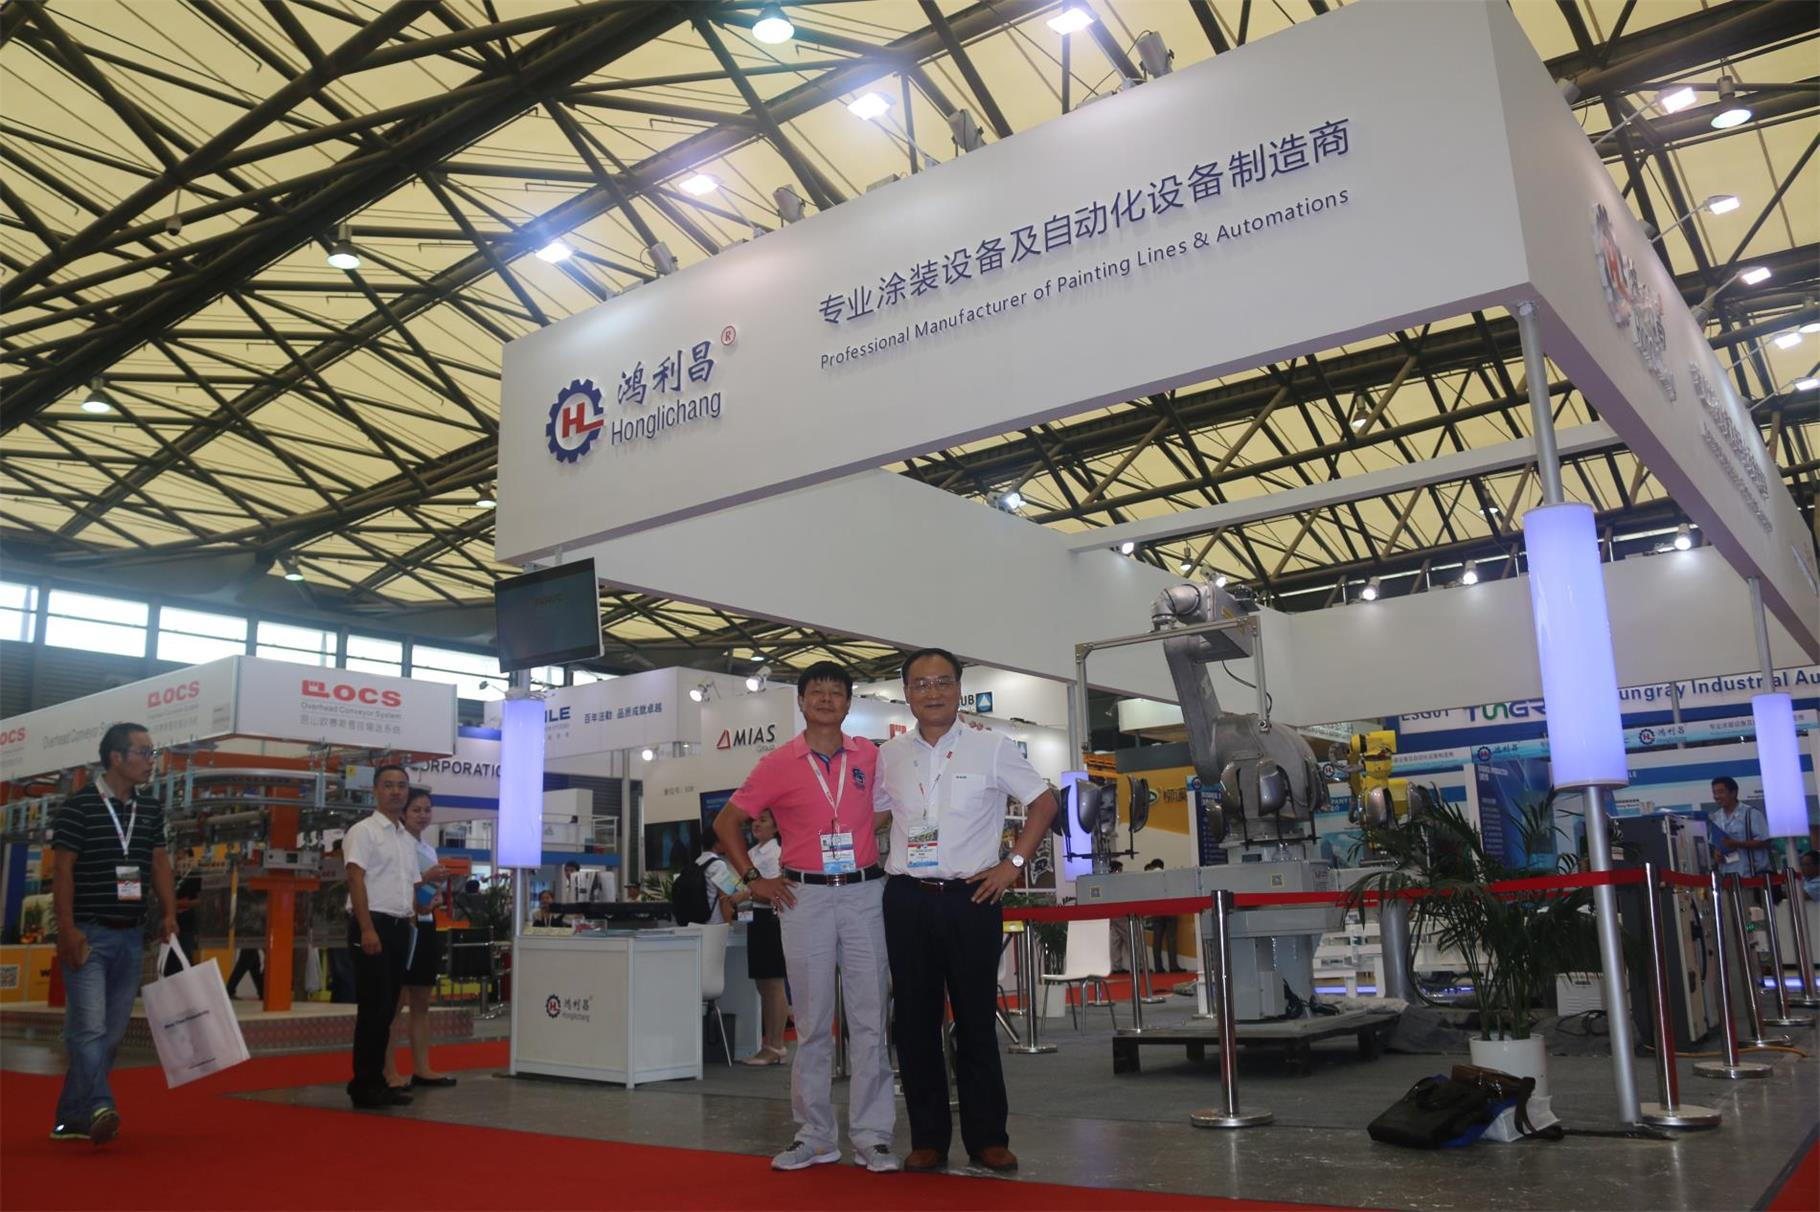 The Photo with Our Clients in Shanghai Exhibitiion